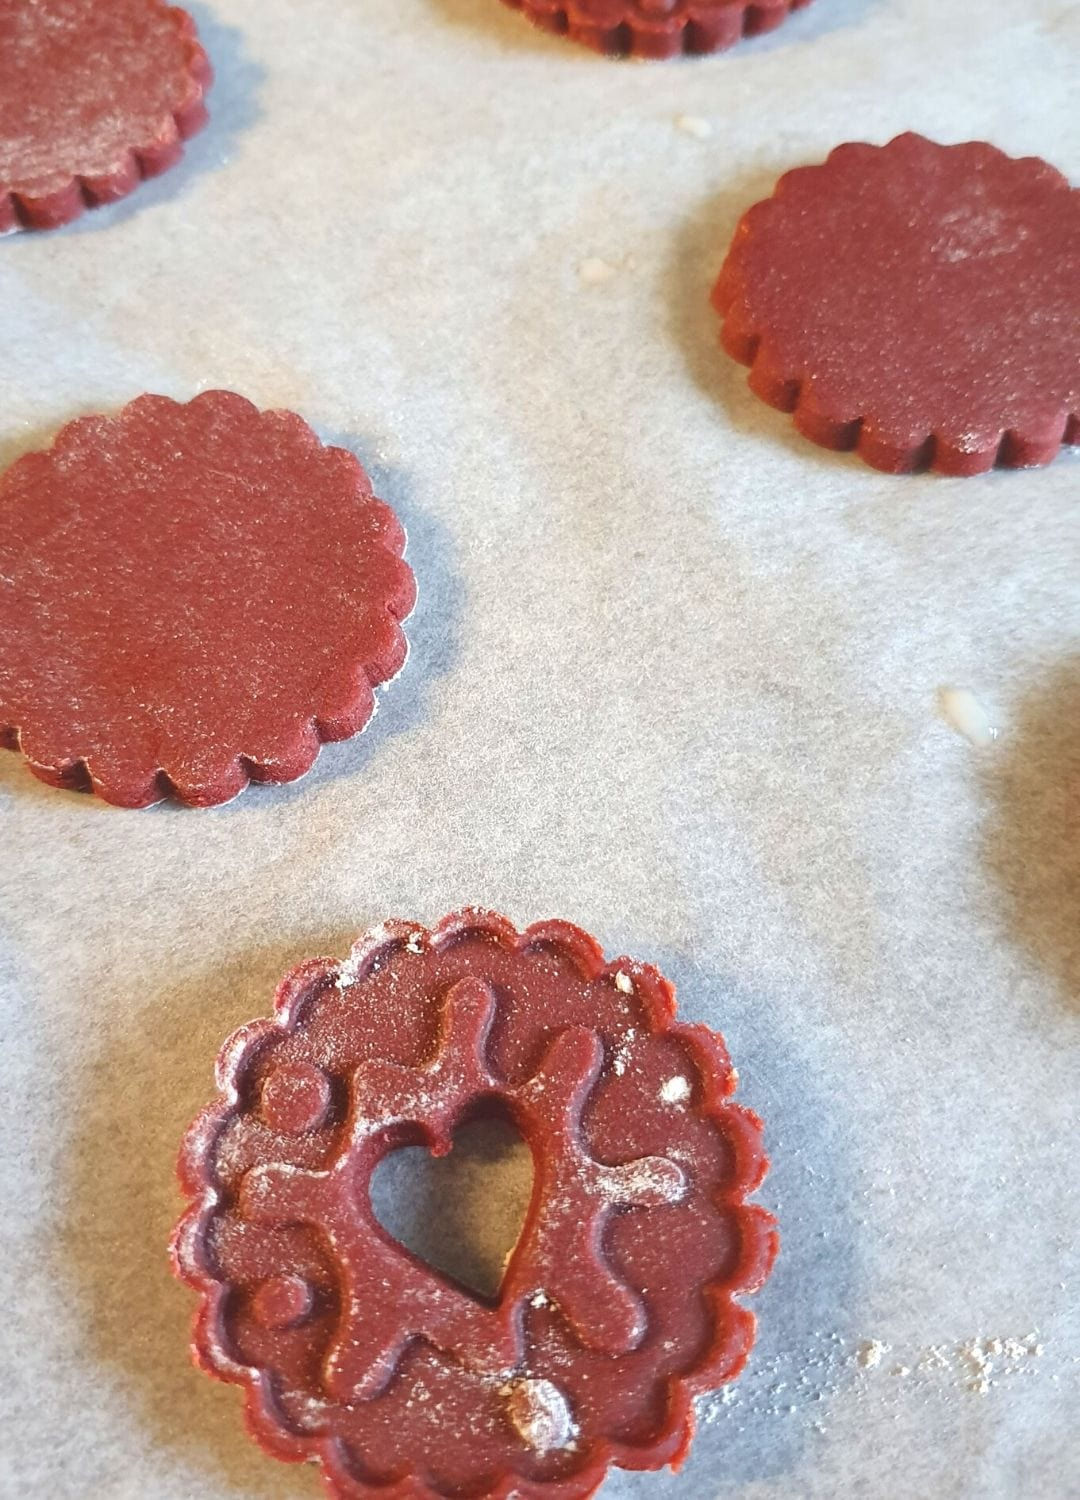 Jammy Dodger Red Velvet Cookies ready to bake